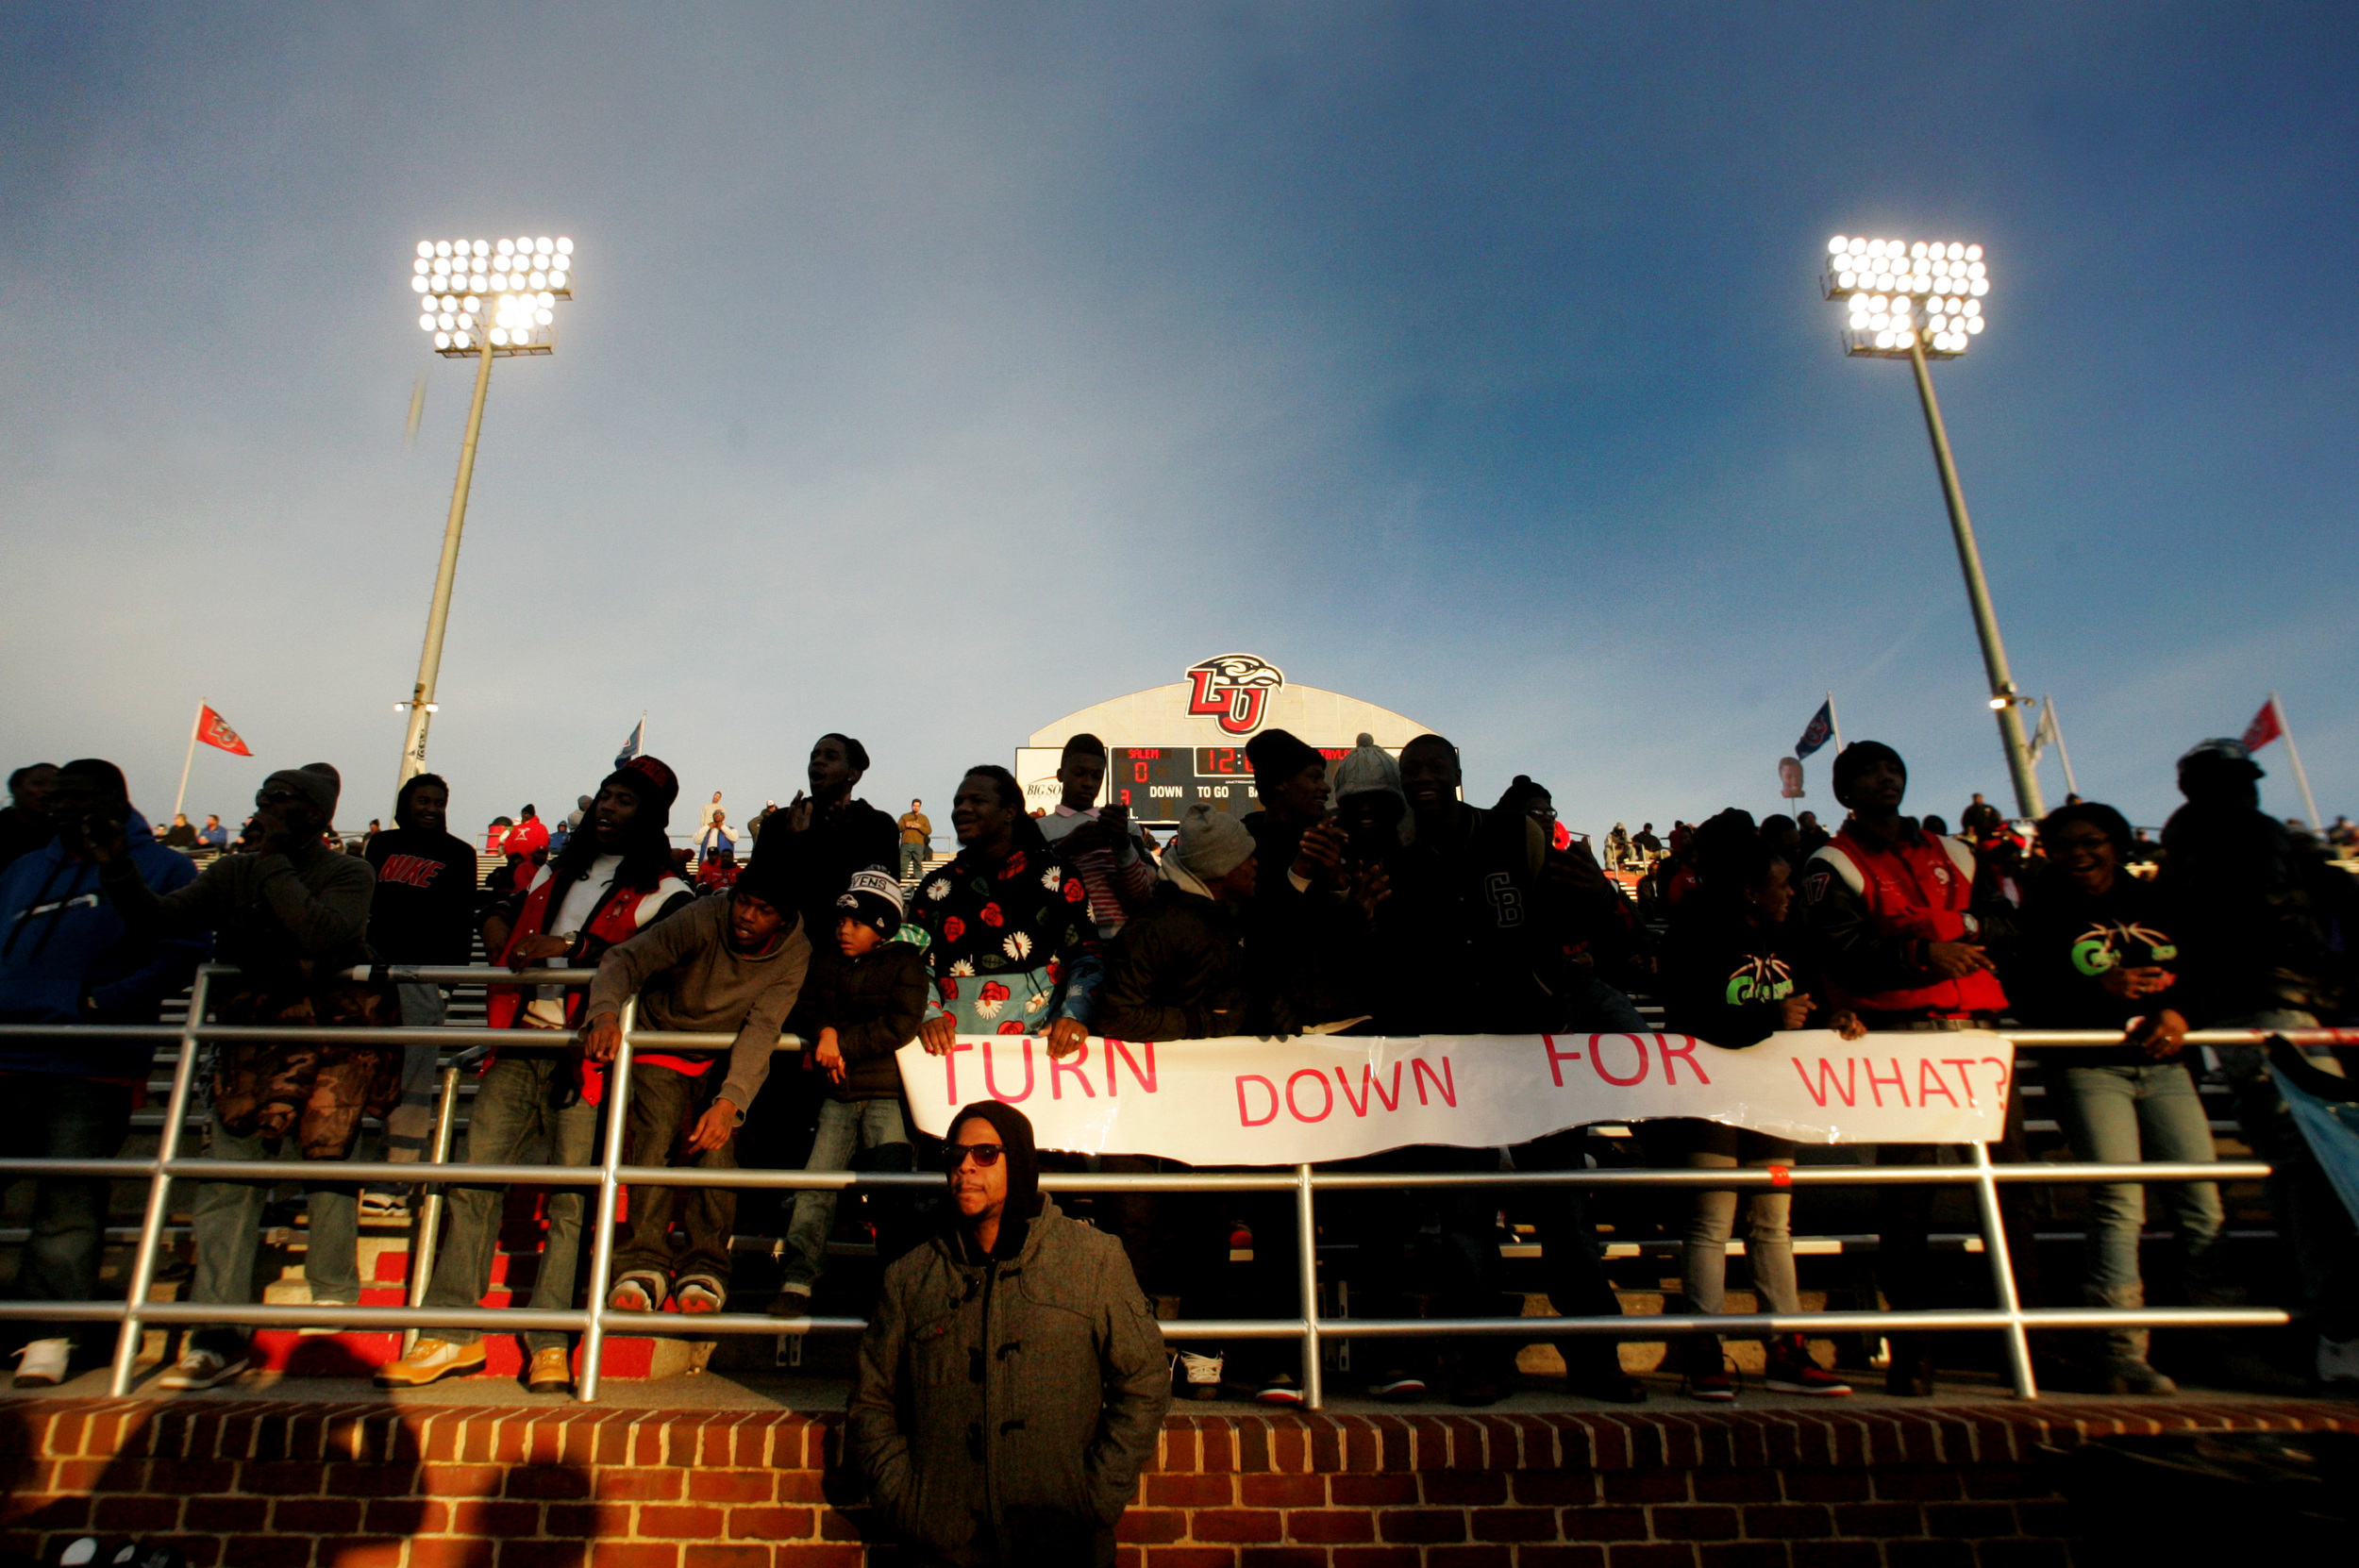 Demarius Wilson, a school administrator, waits for the Lake Taylor Titans to enter field prior to the start of their championship game against Salem, Saturday, Dec. 13, 2014 at Liberty University in Lynchburg.